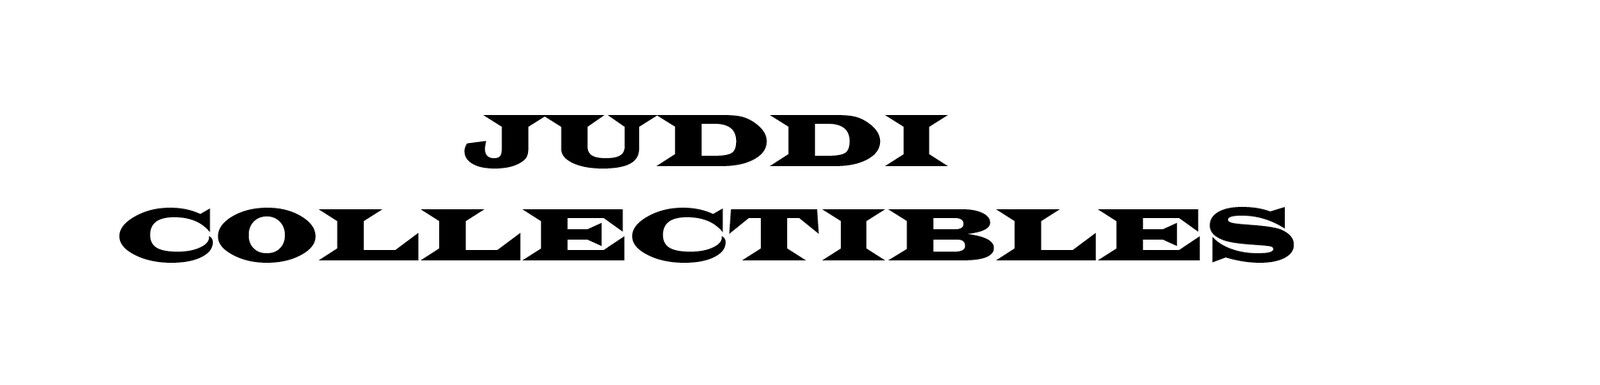 Juddi collectibles